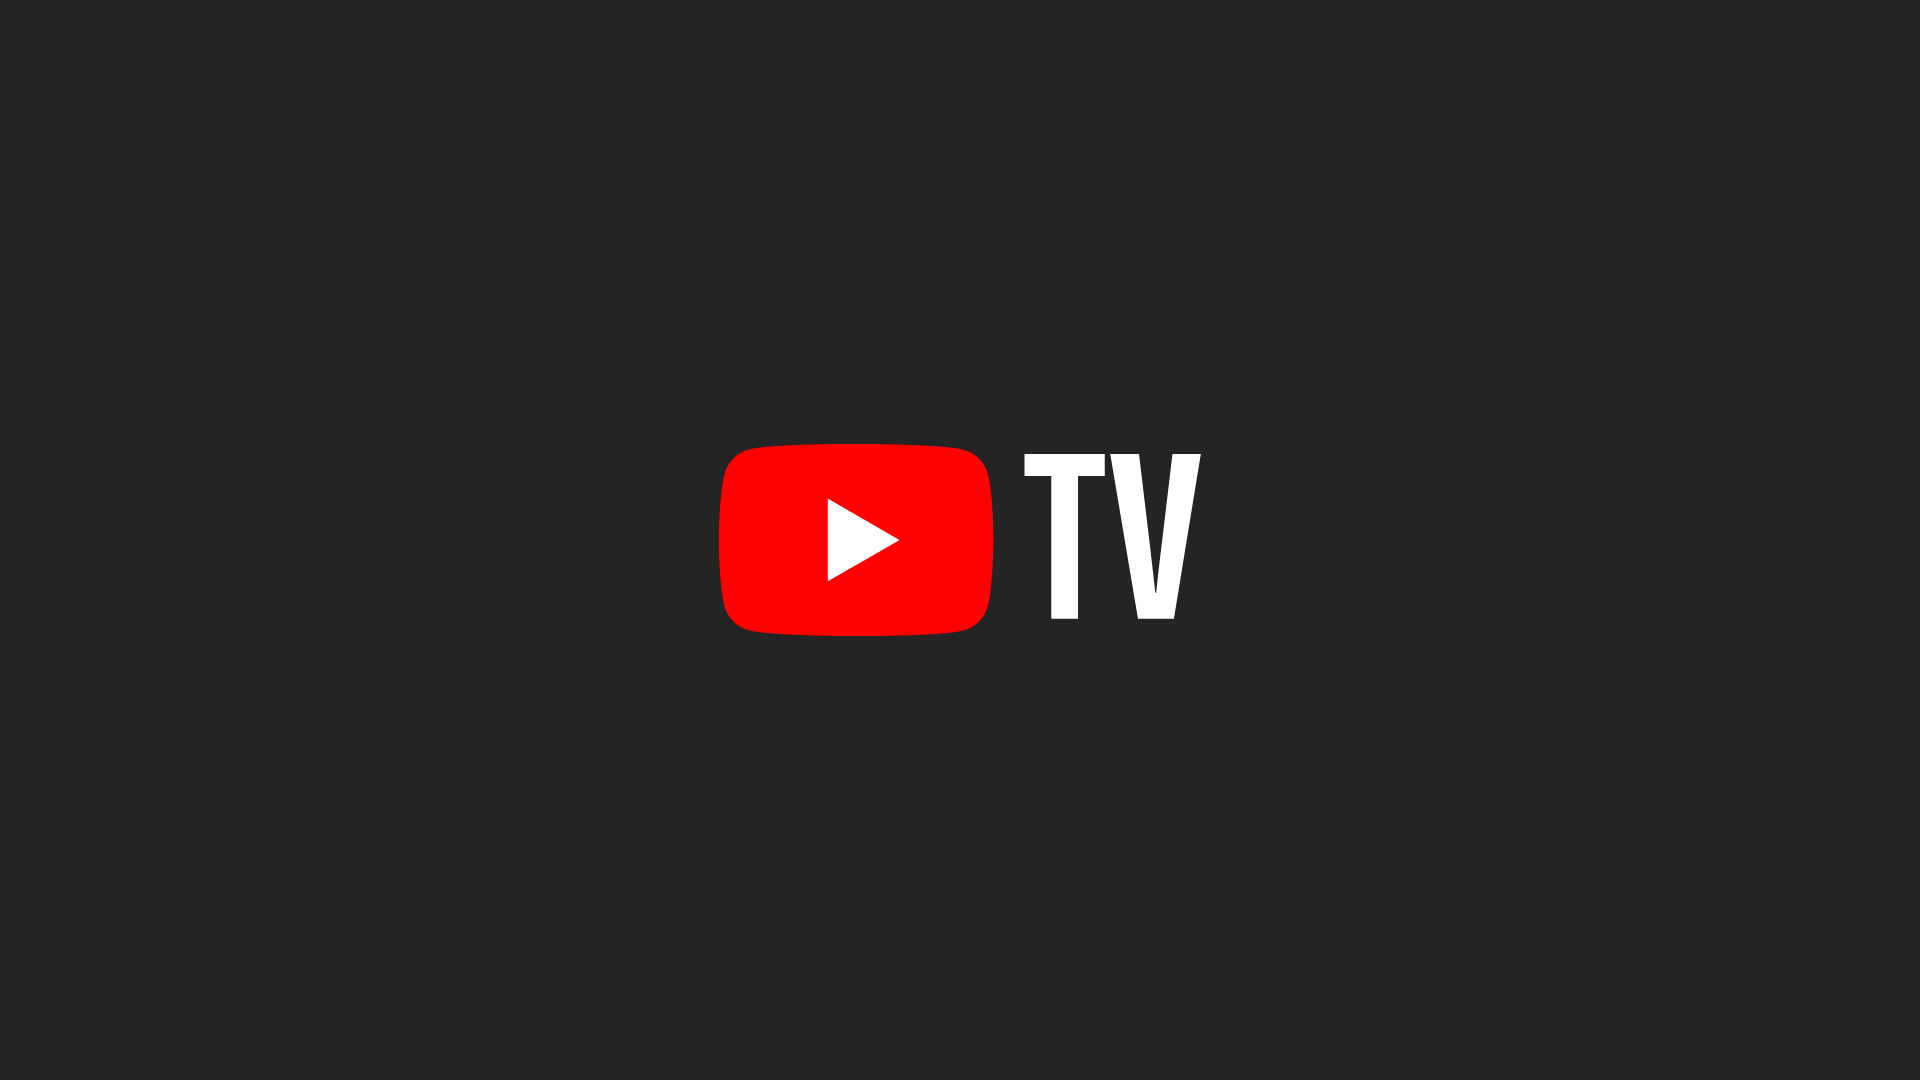 Youtube Tv Is Cracking Down On Account Sharing Live Tv Streaming Tv Cords Streaming Tv